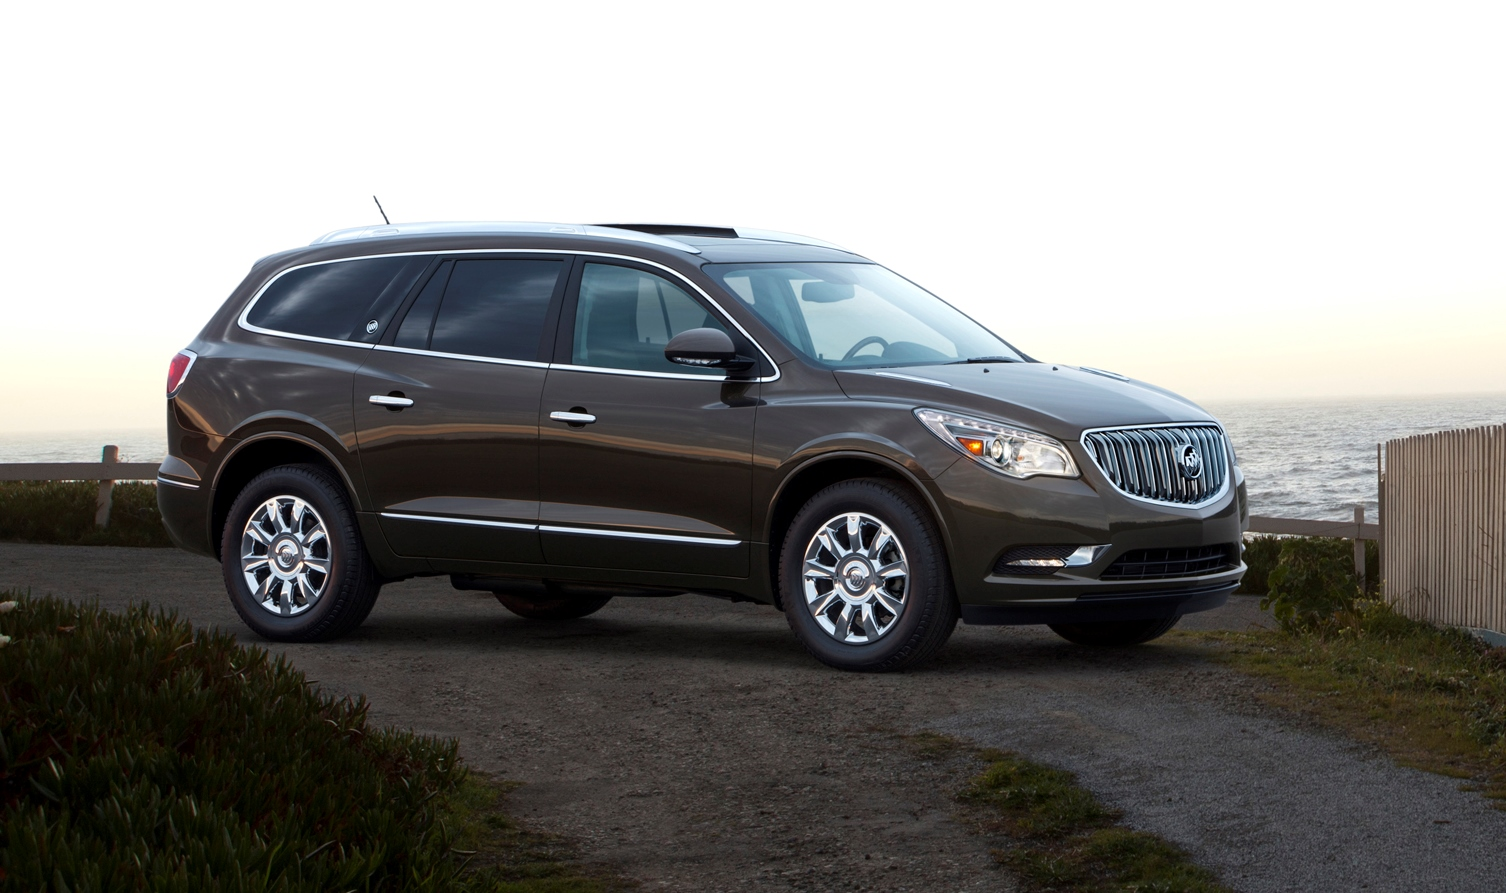 emaxkpje buick photo door view details suv side soldotna image tan utility ak automobiles used encore in left sport